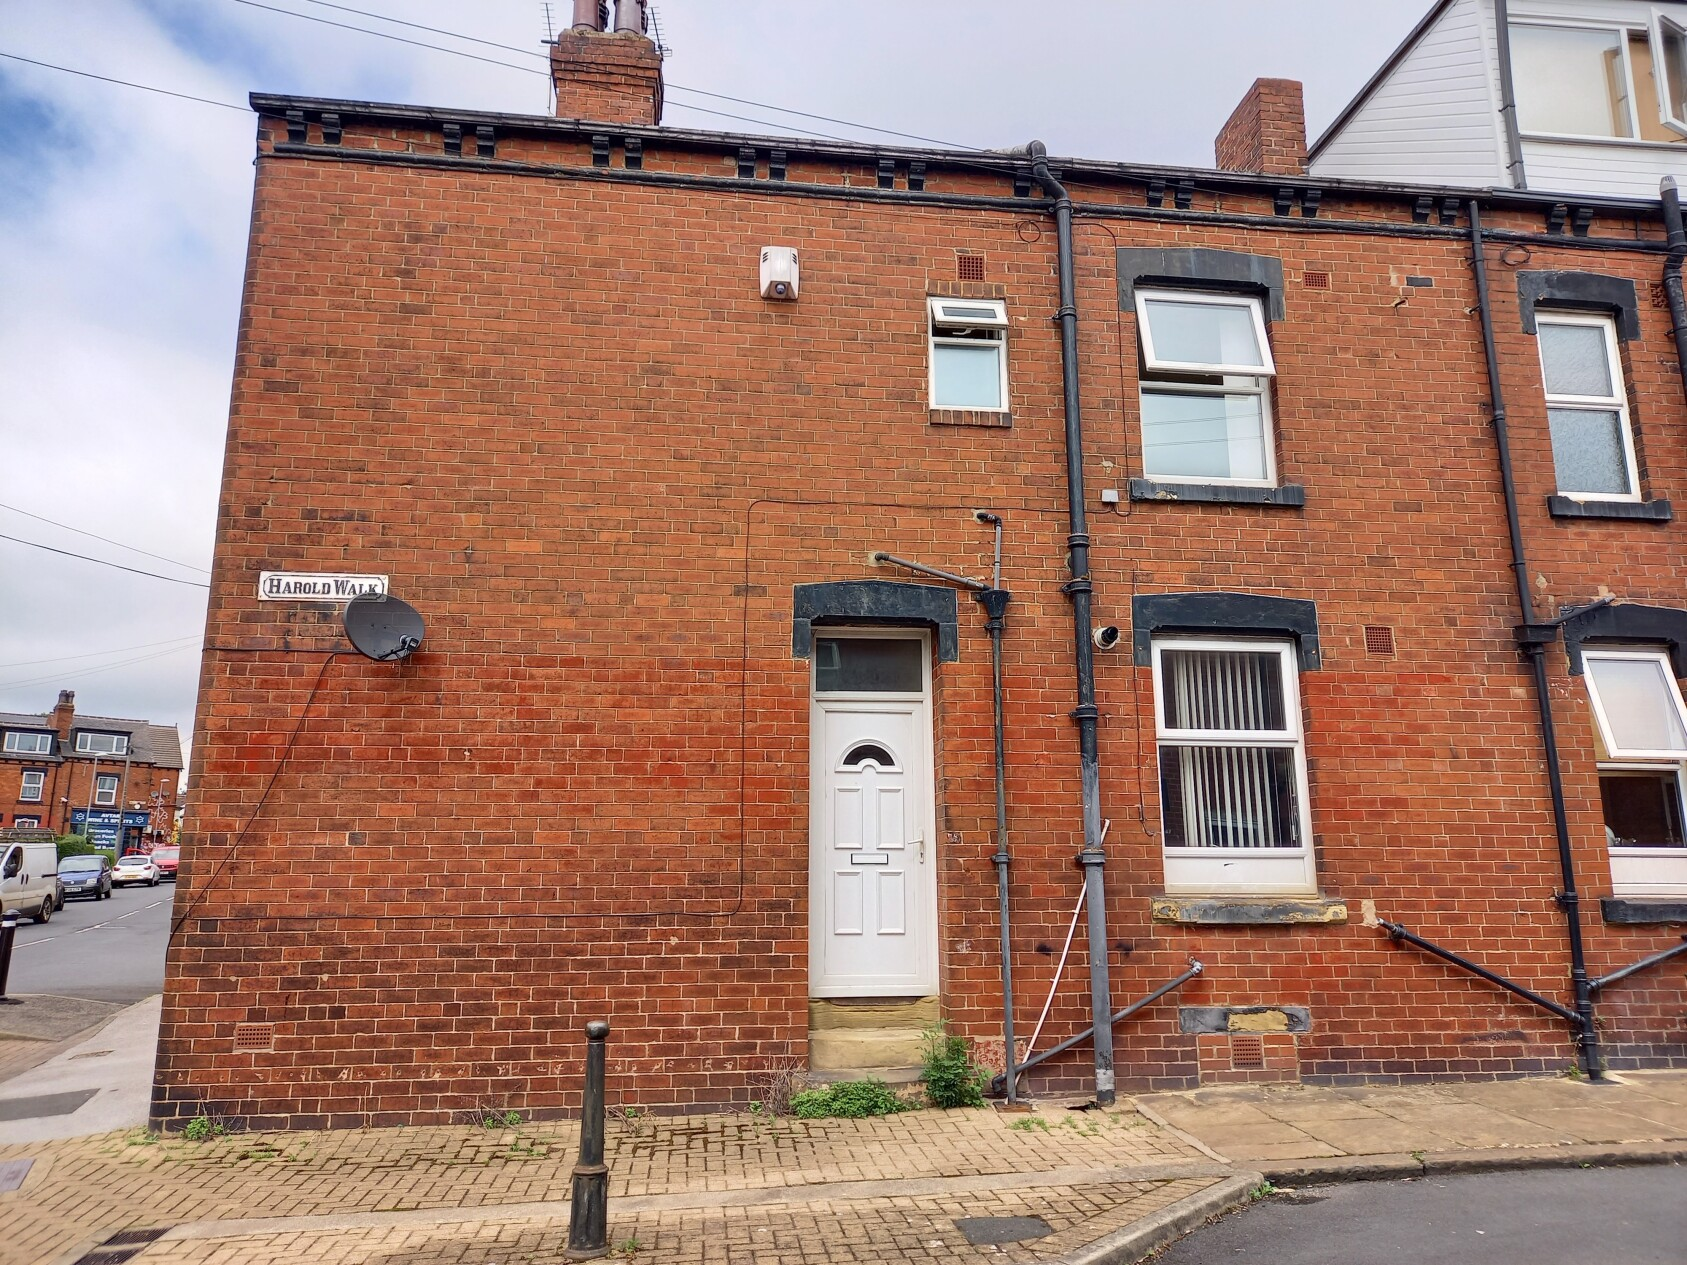 4 bedroom student house in Hyde Park, Leeds